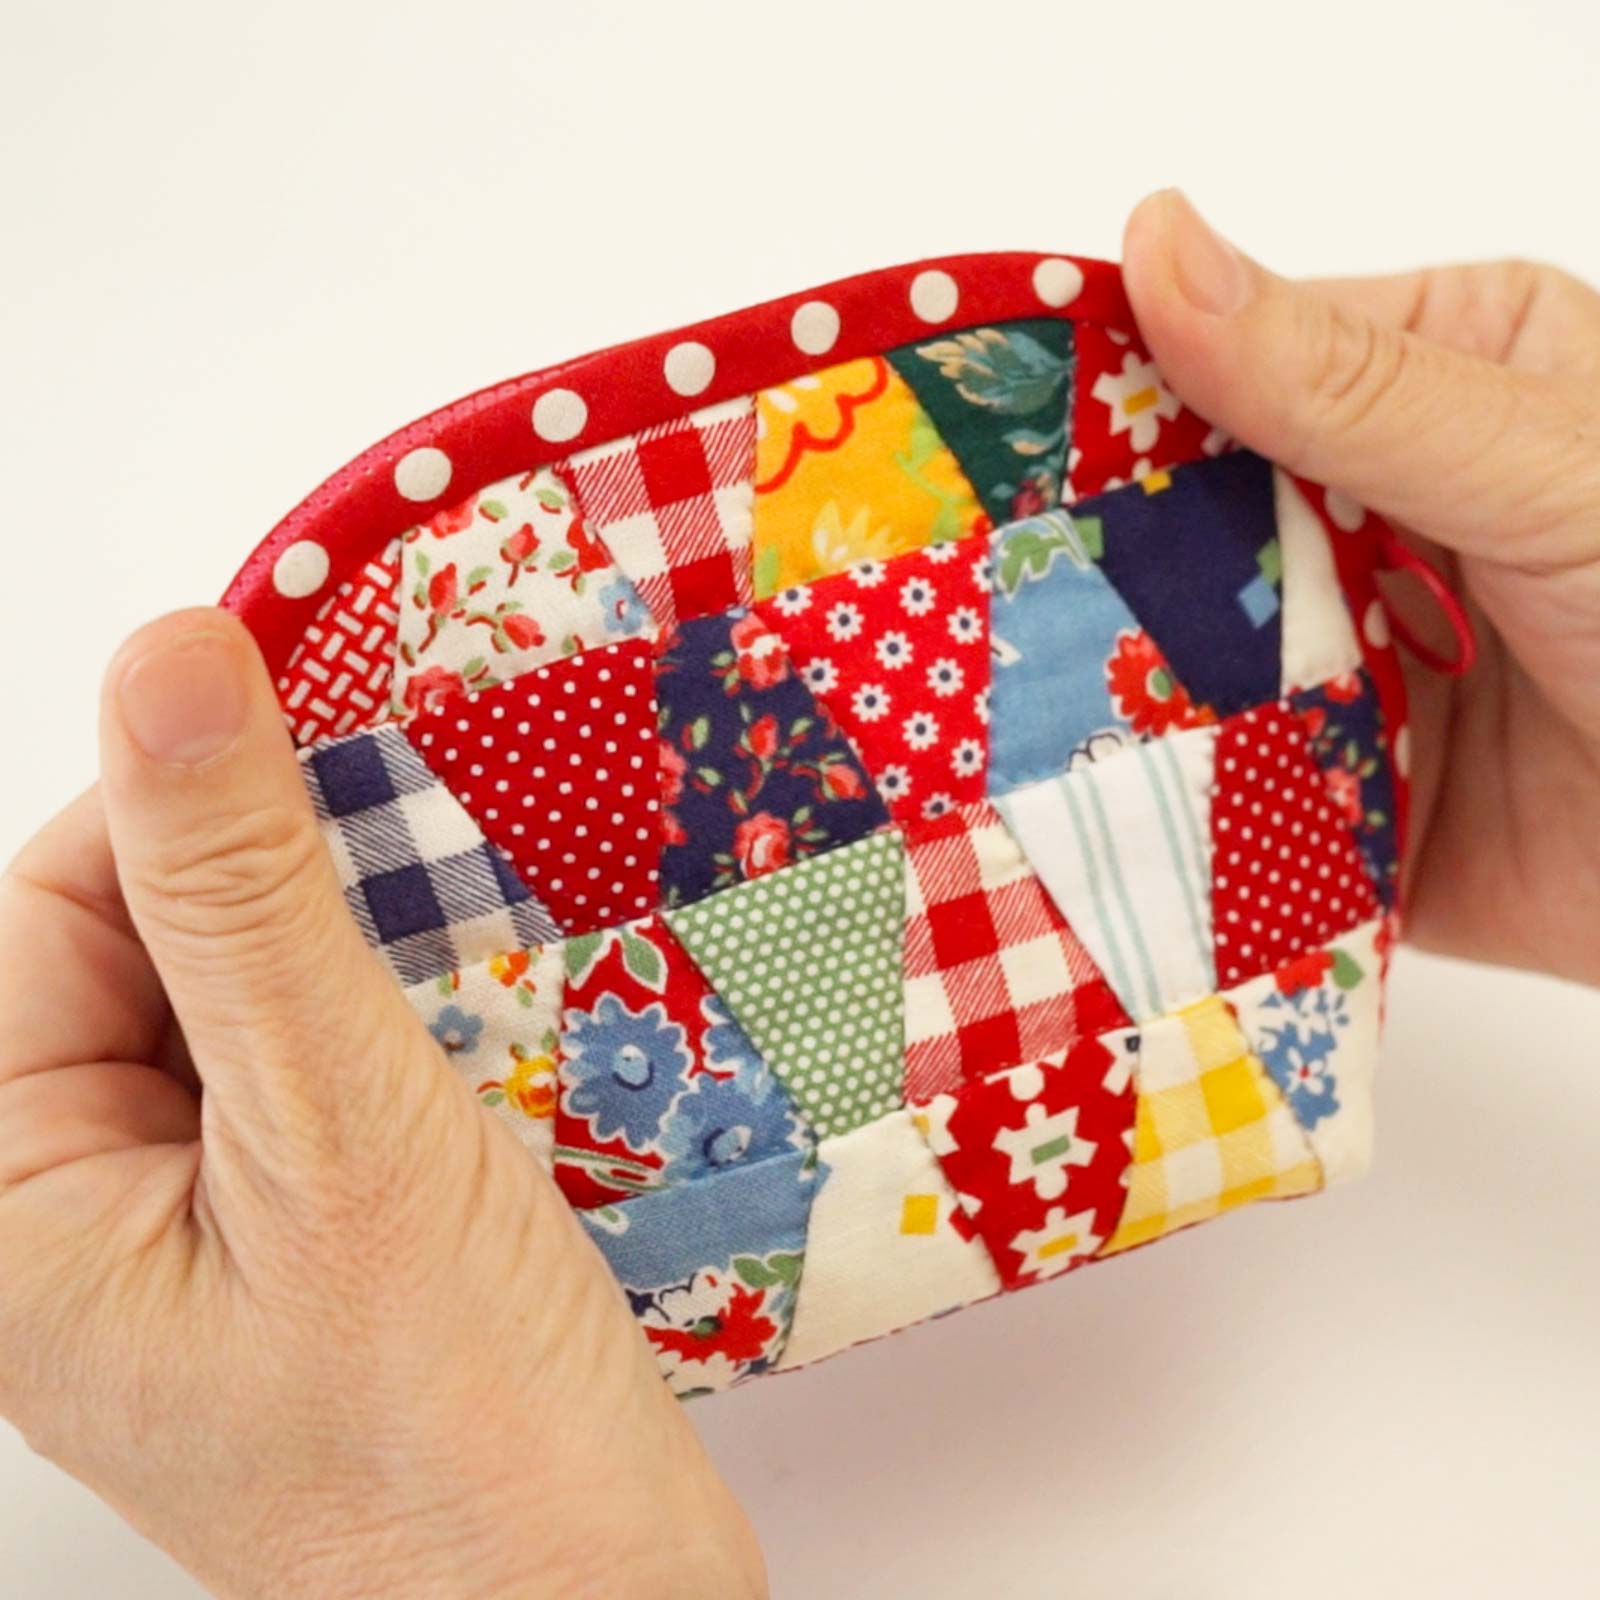 How to Make a Patchwork Pouch with a Tumbler Pattern